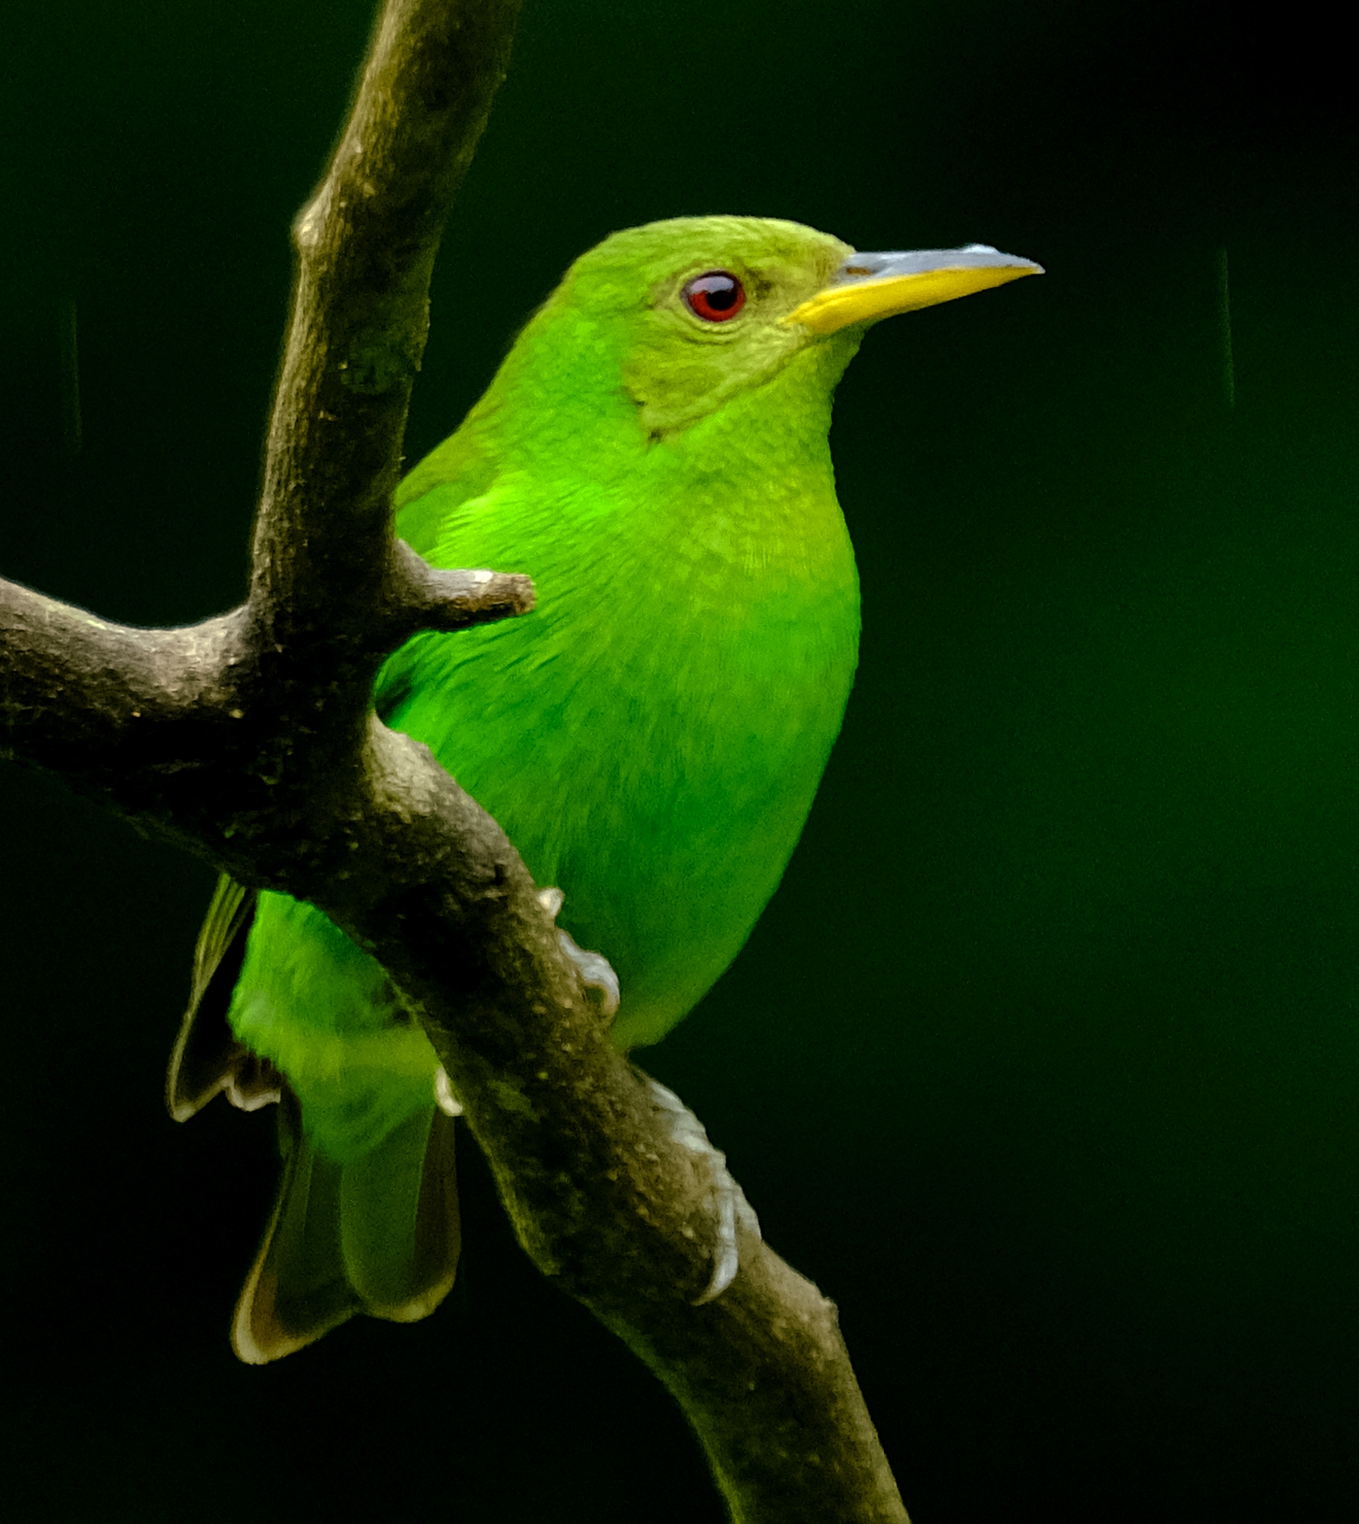 The female Green Honeycreeper, unlike the male, is green.